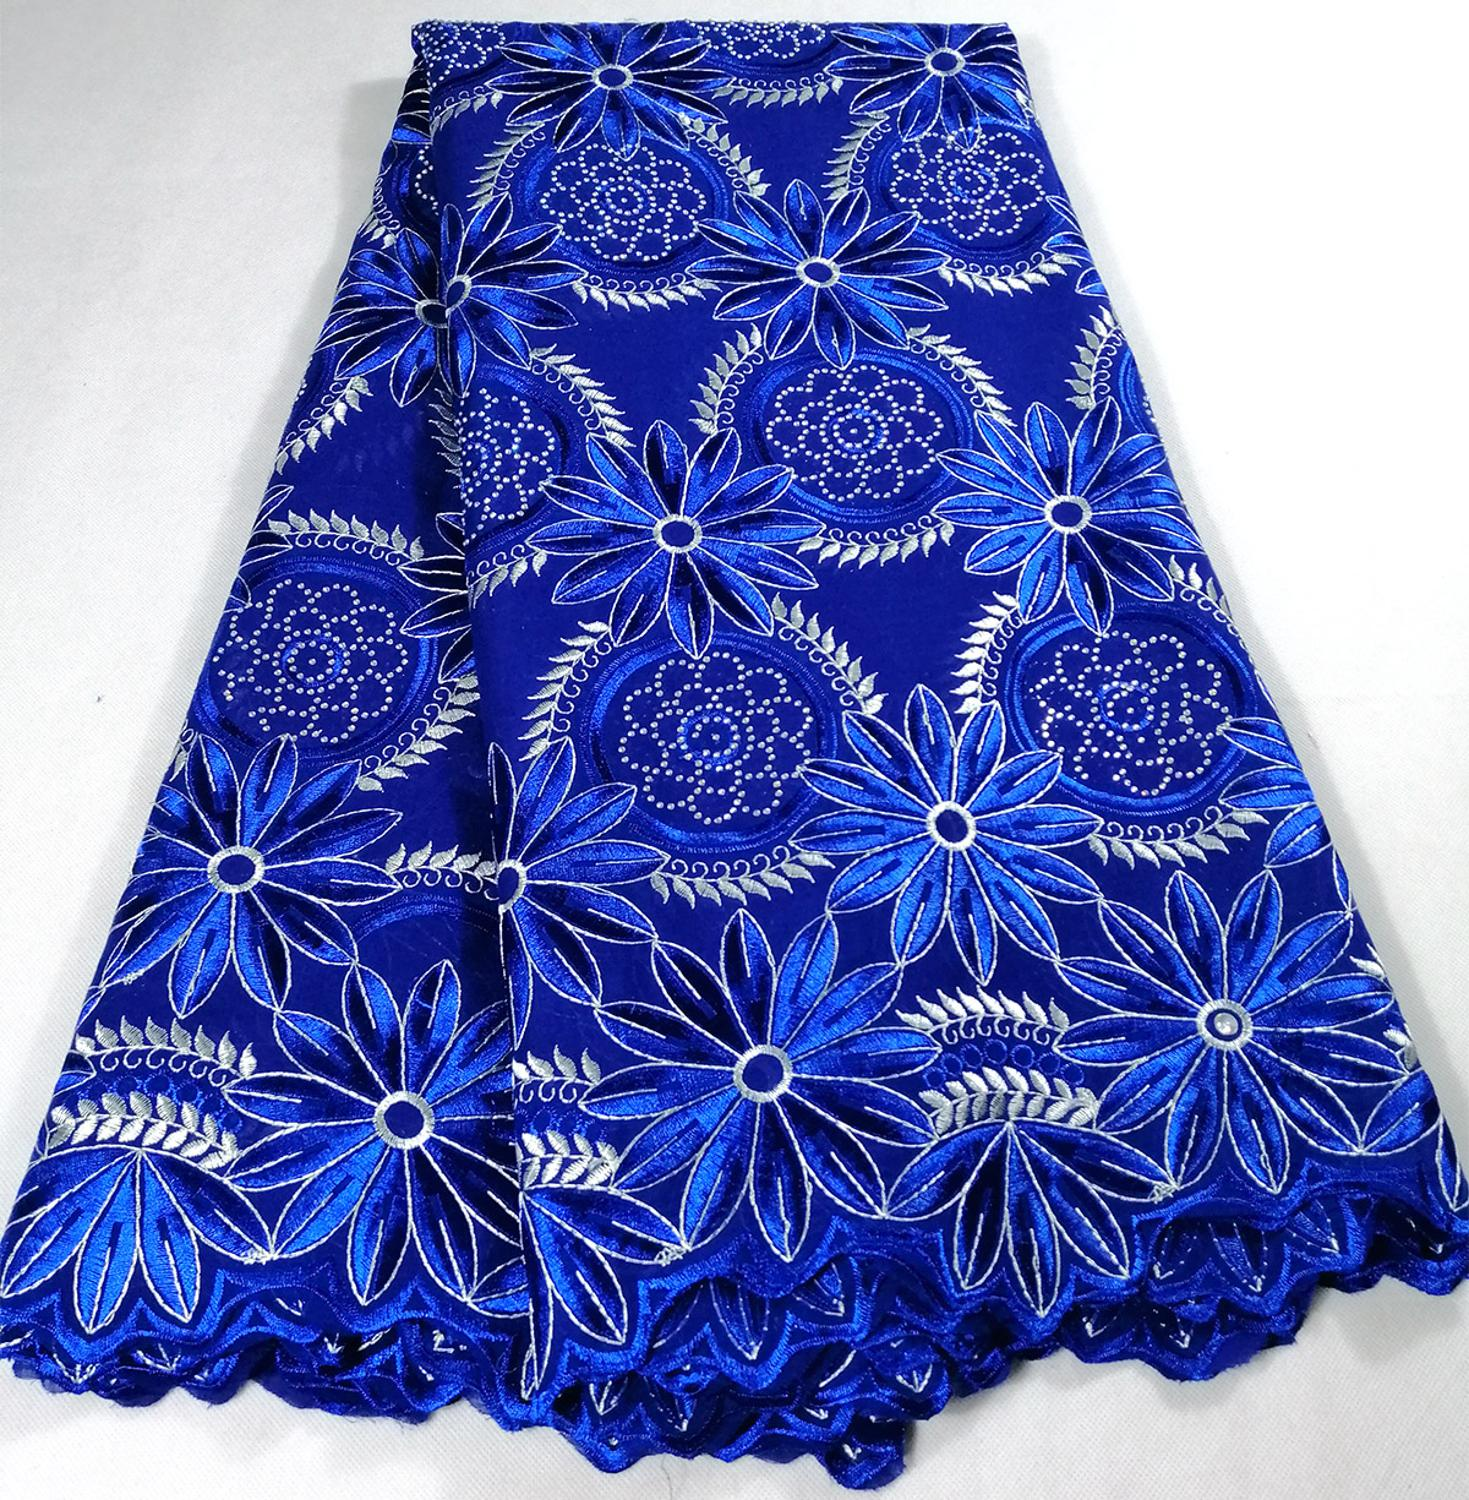 2019 Royal Blue New Design Nigeria lace fabric Fashion French African Cotton Swiss Voile Lace In